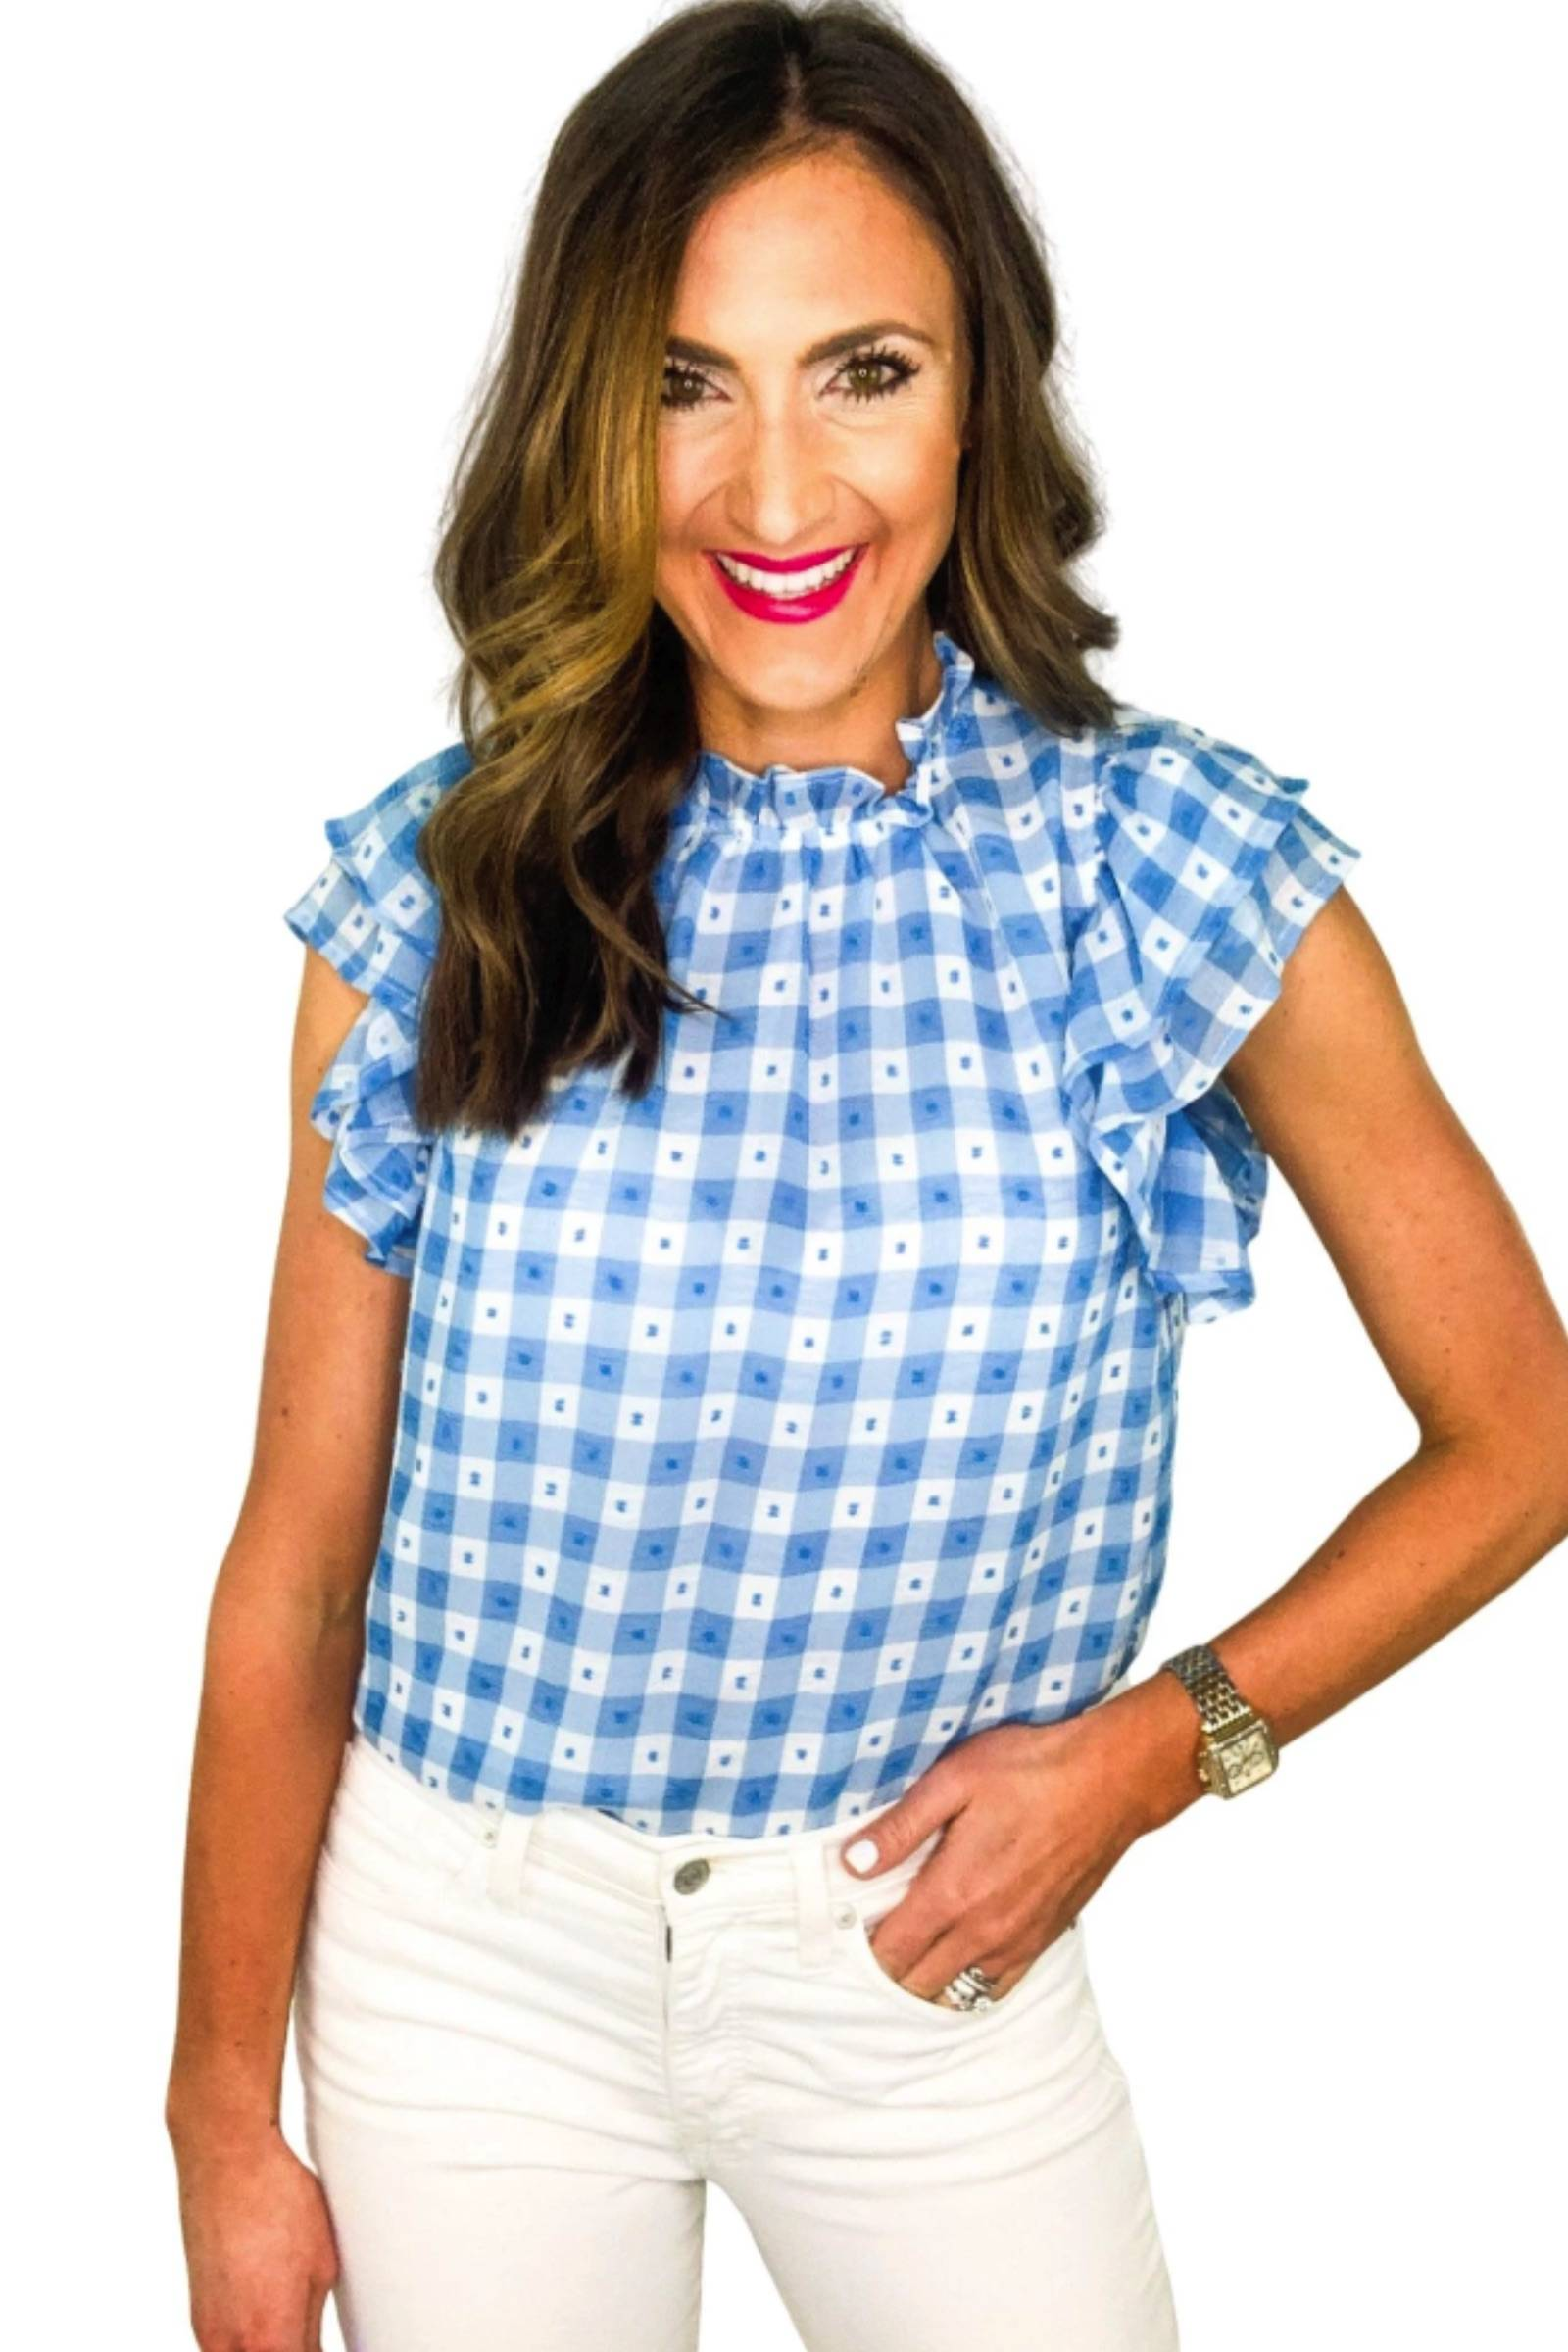 shop-style-your-sense-shop-blue-gingham-mock-turtle-neck-top